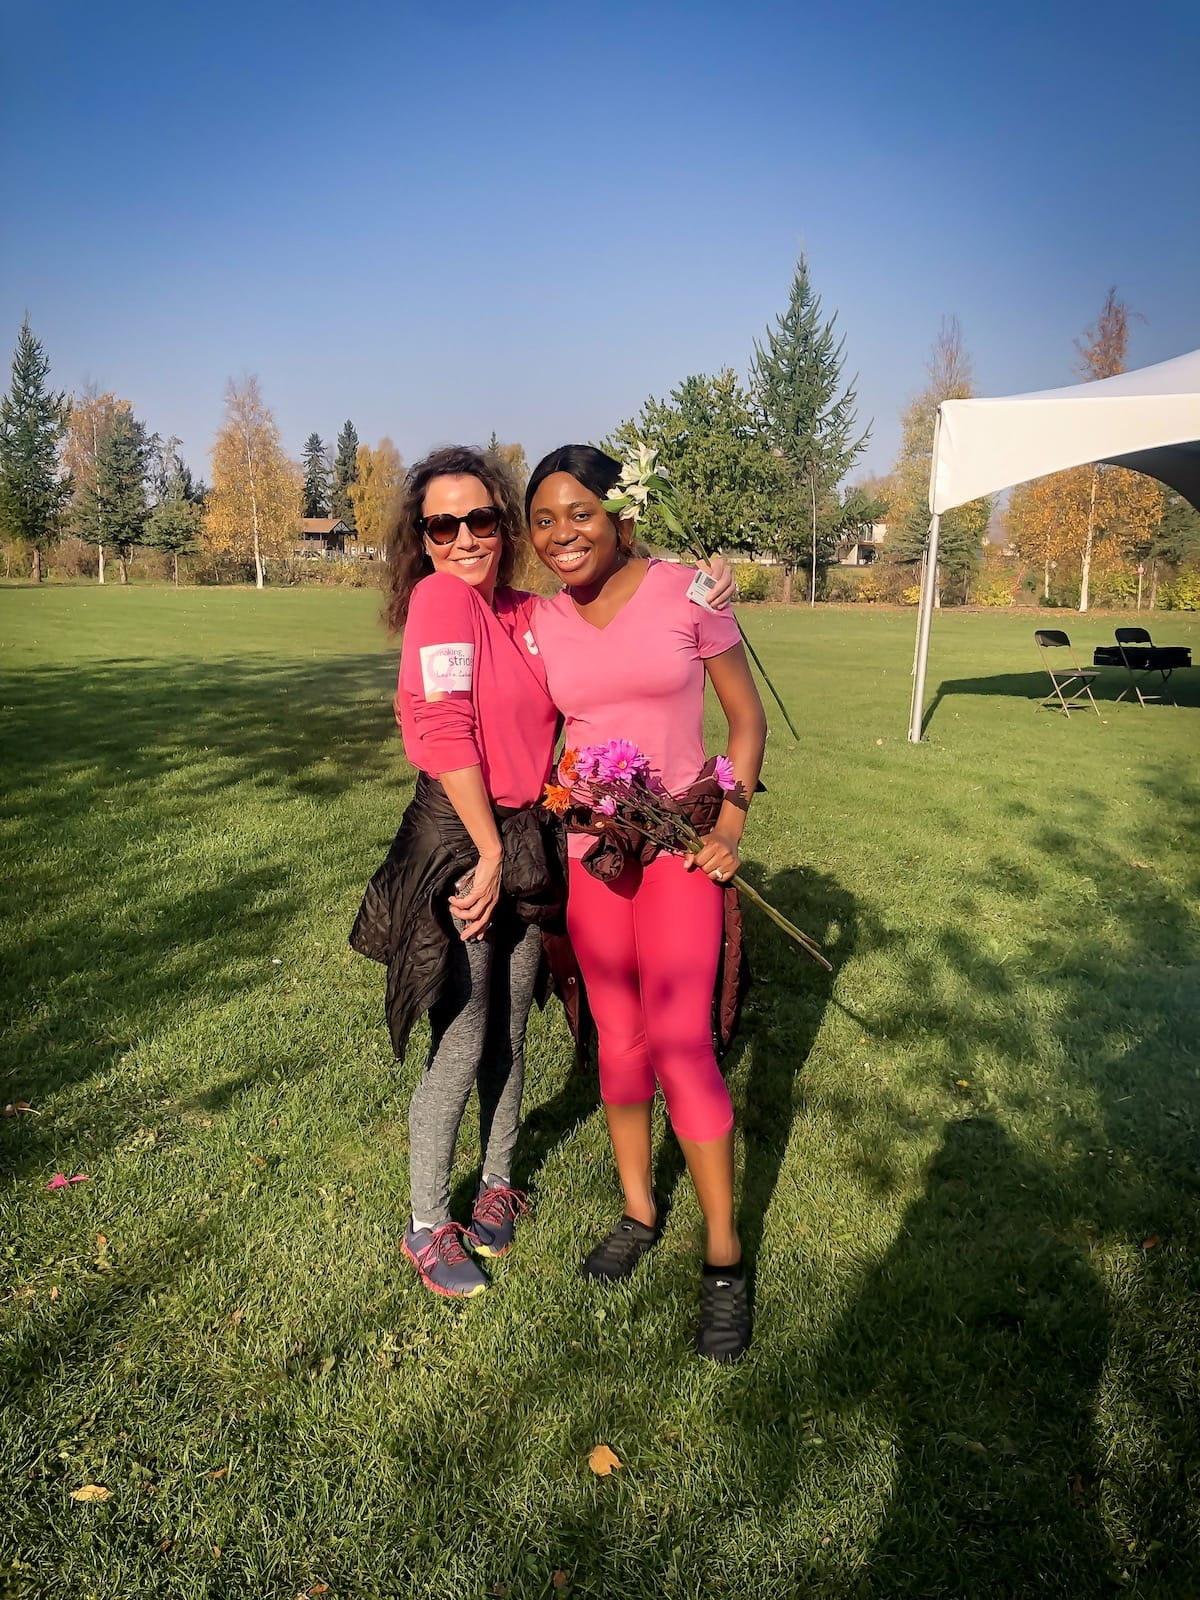 Making strides against breast cancer, 5K run in Fairbanks, Alaska